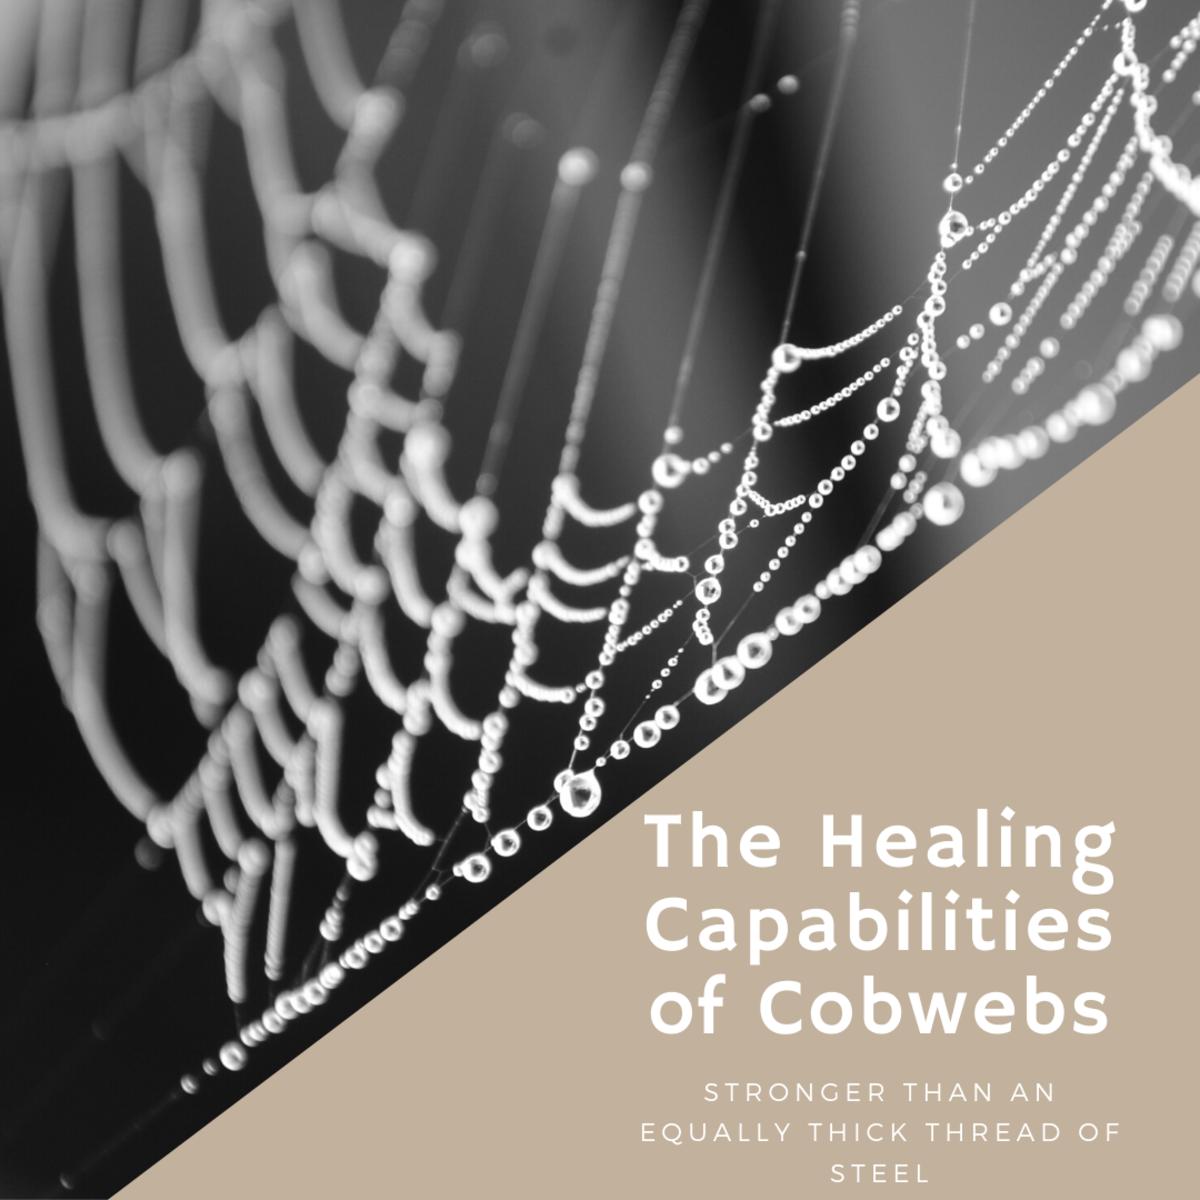 Survival Healing: Using Spider Webs on Wounds